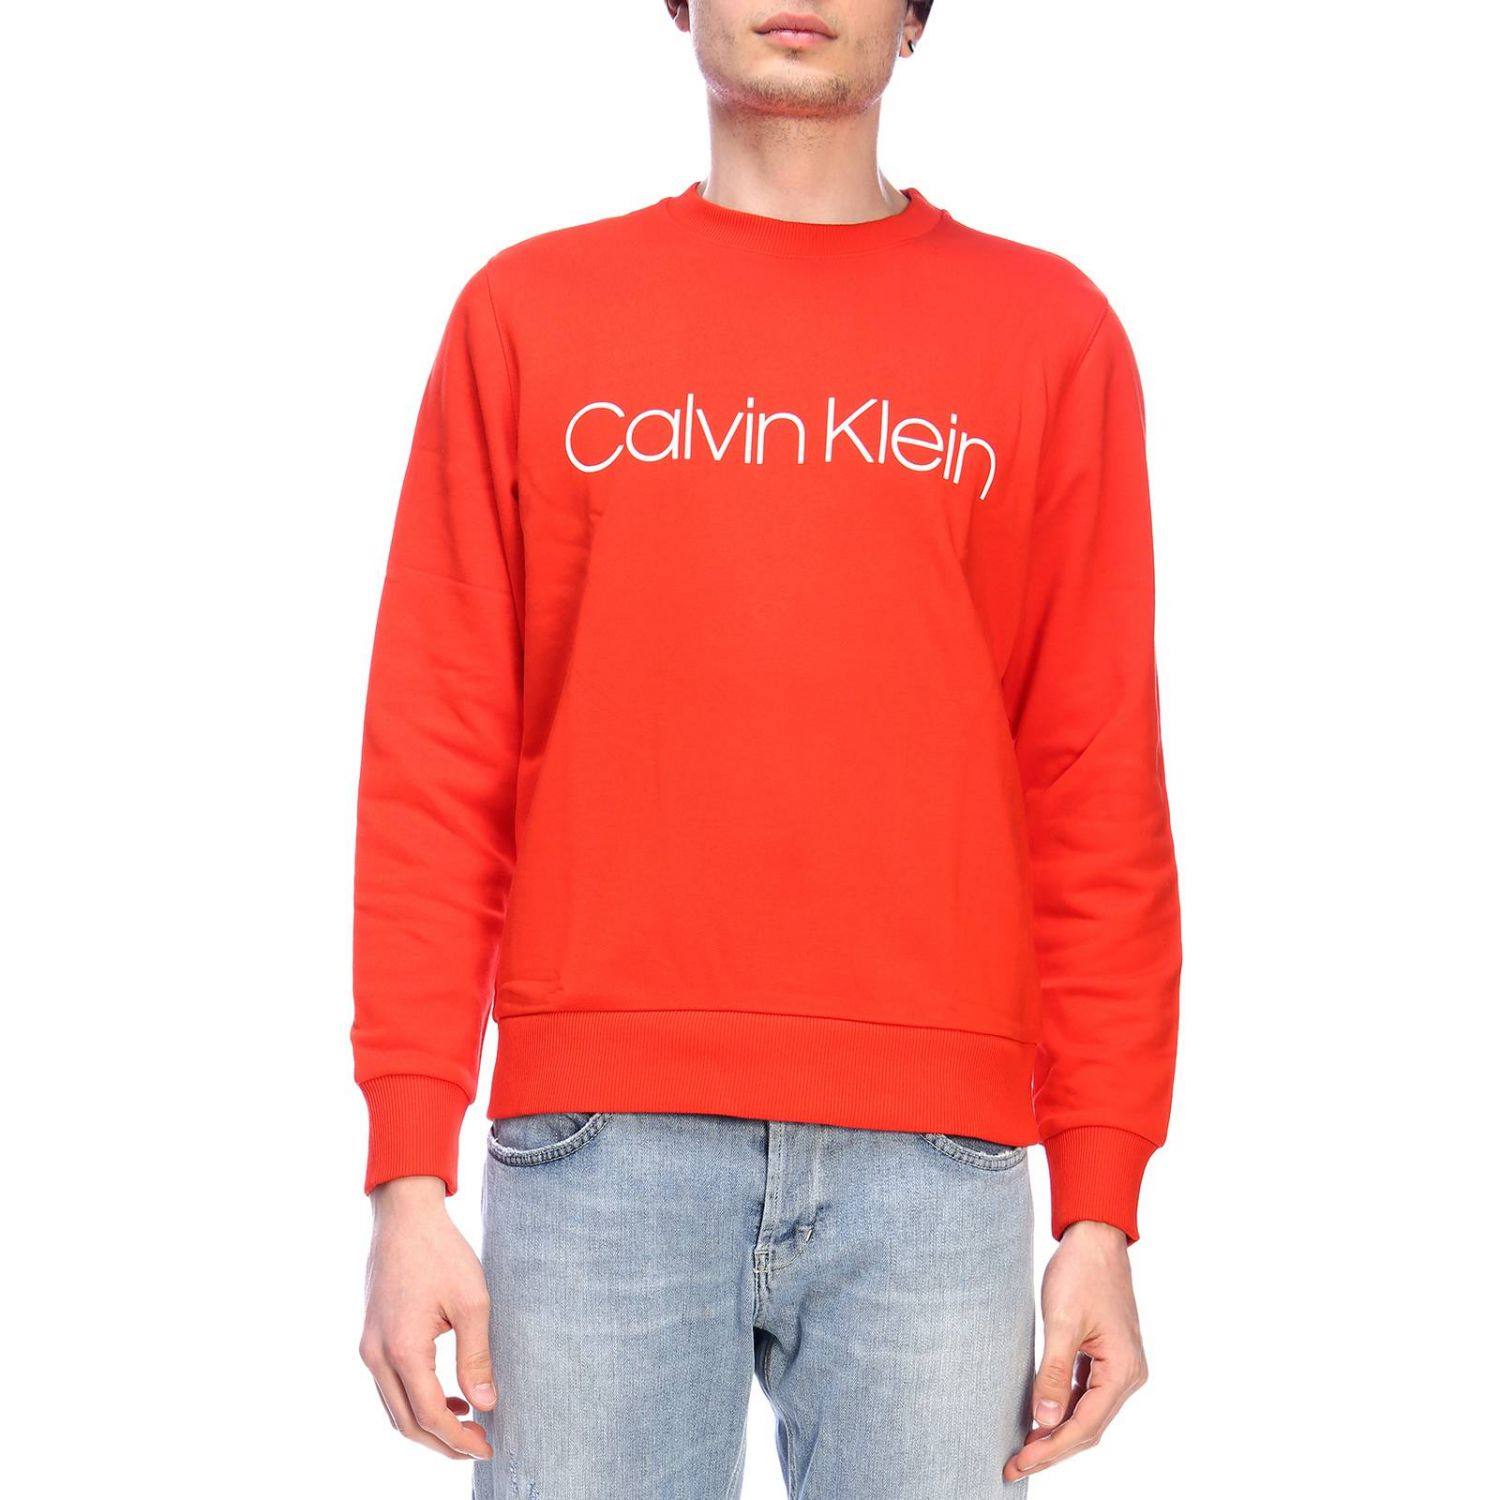 Pull homme Calvin Klein rouge 1